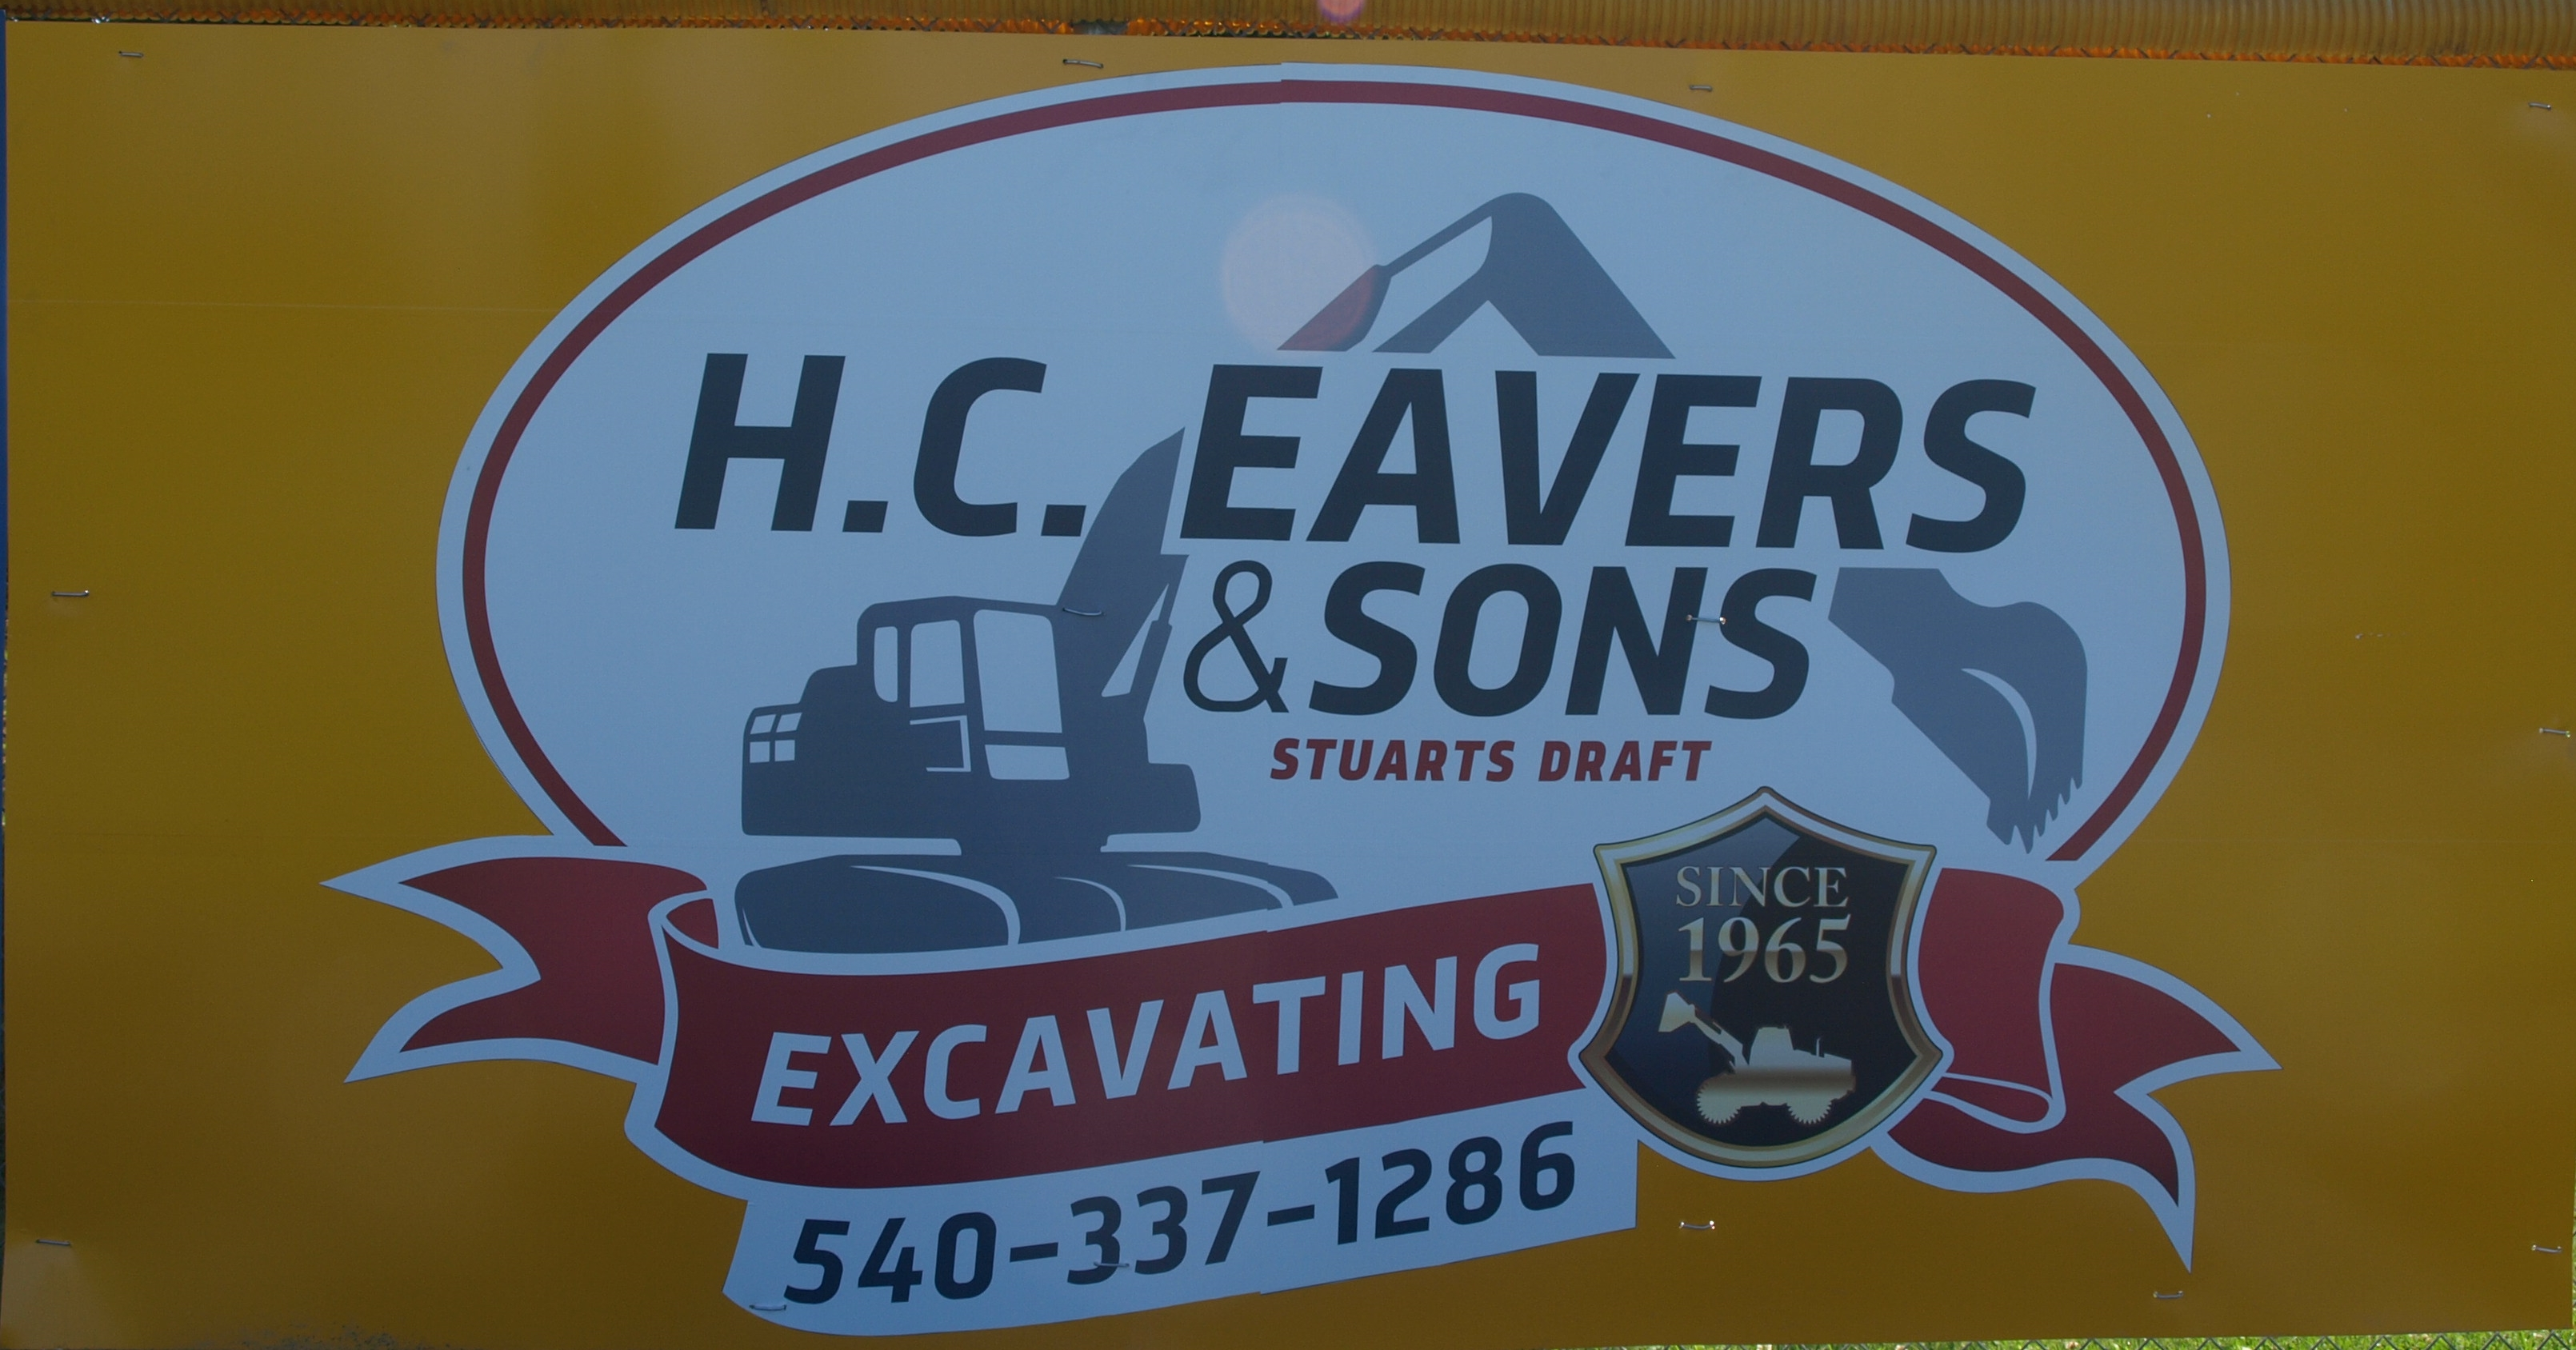 H C Eavers & Sons